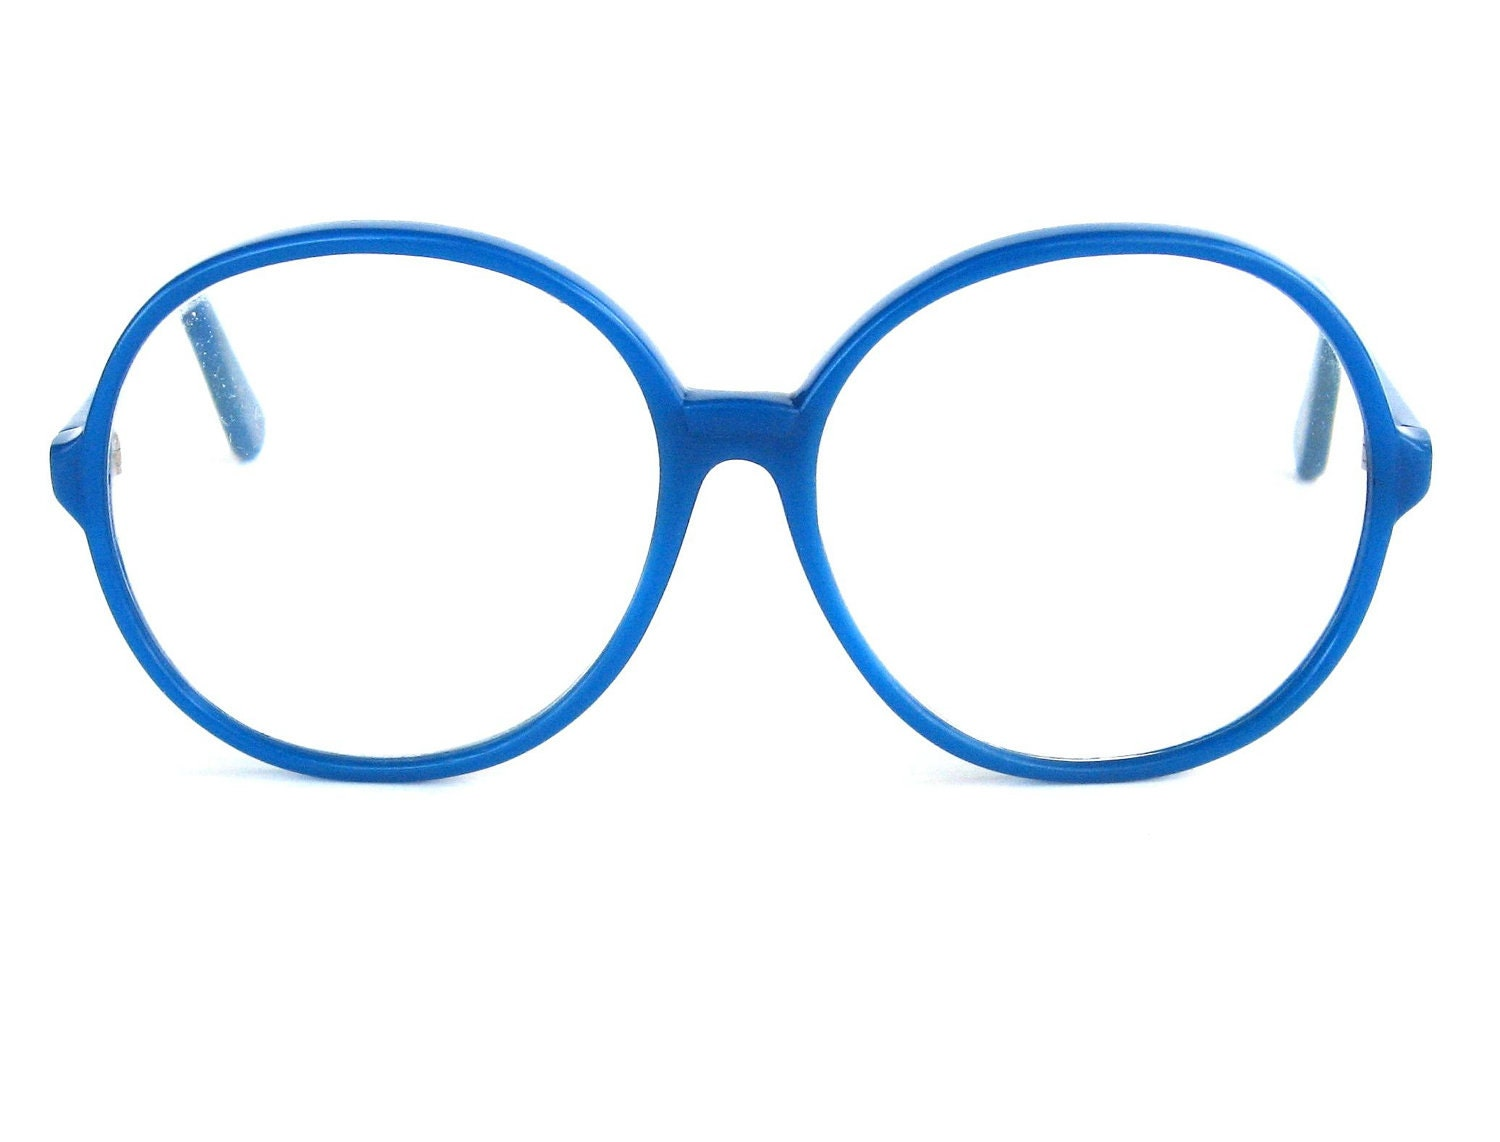 Bright Blue Glasses Frames : Vintage Oversized Bright Blue 1980s Glasses by ...